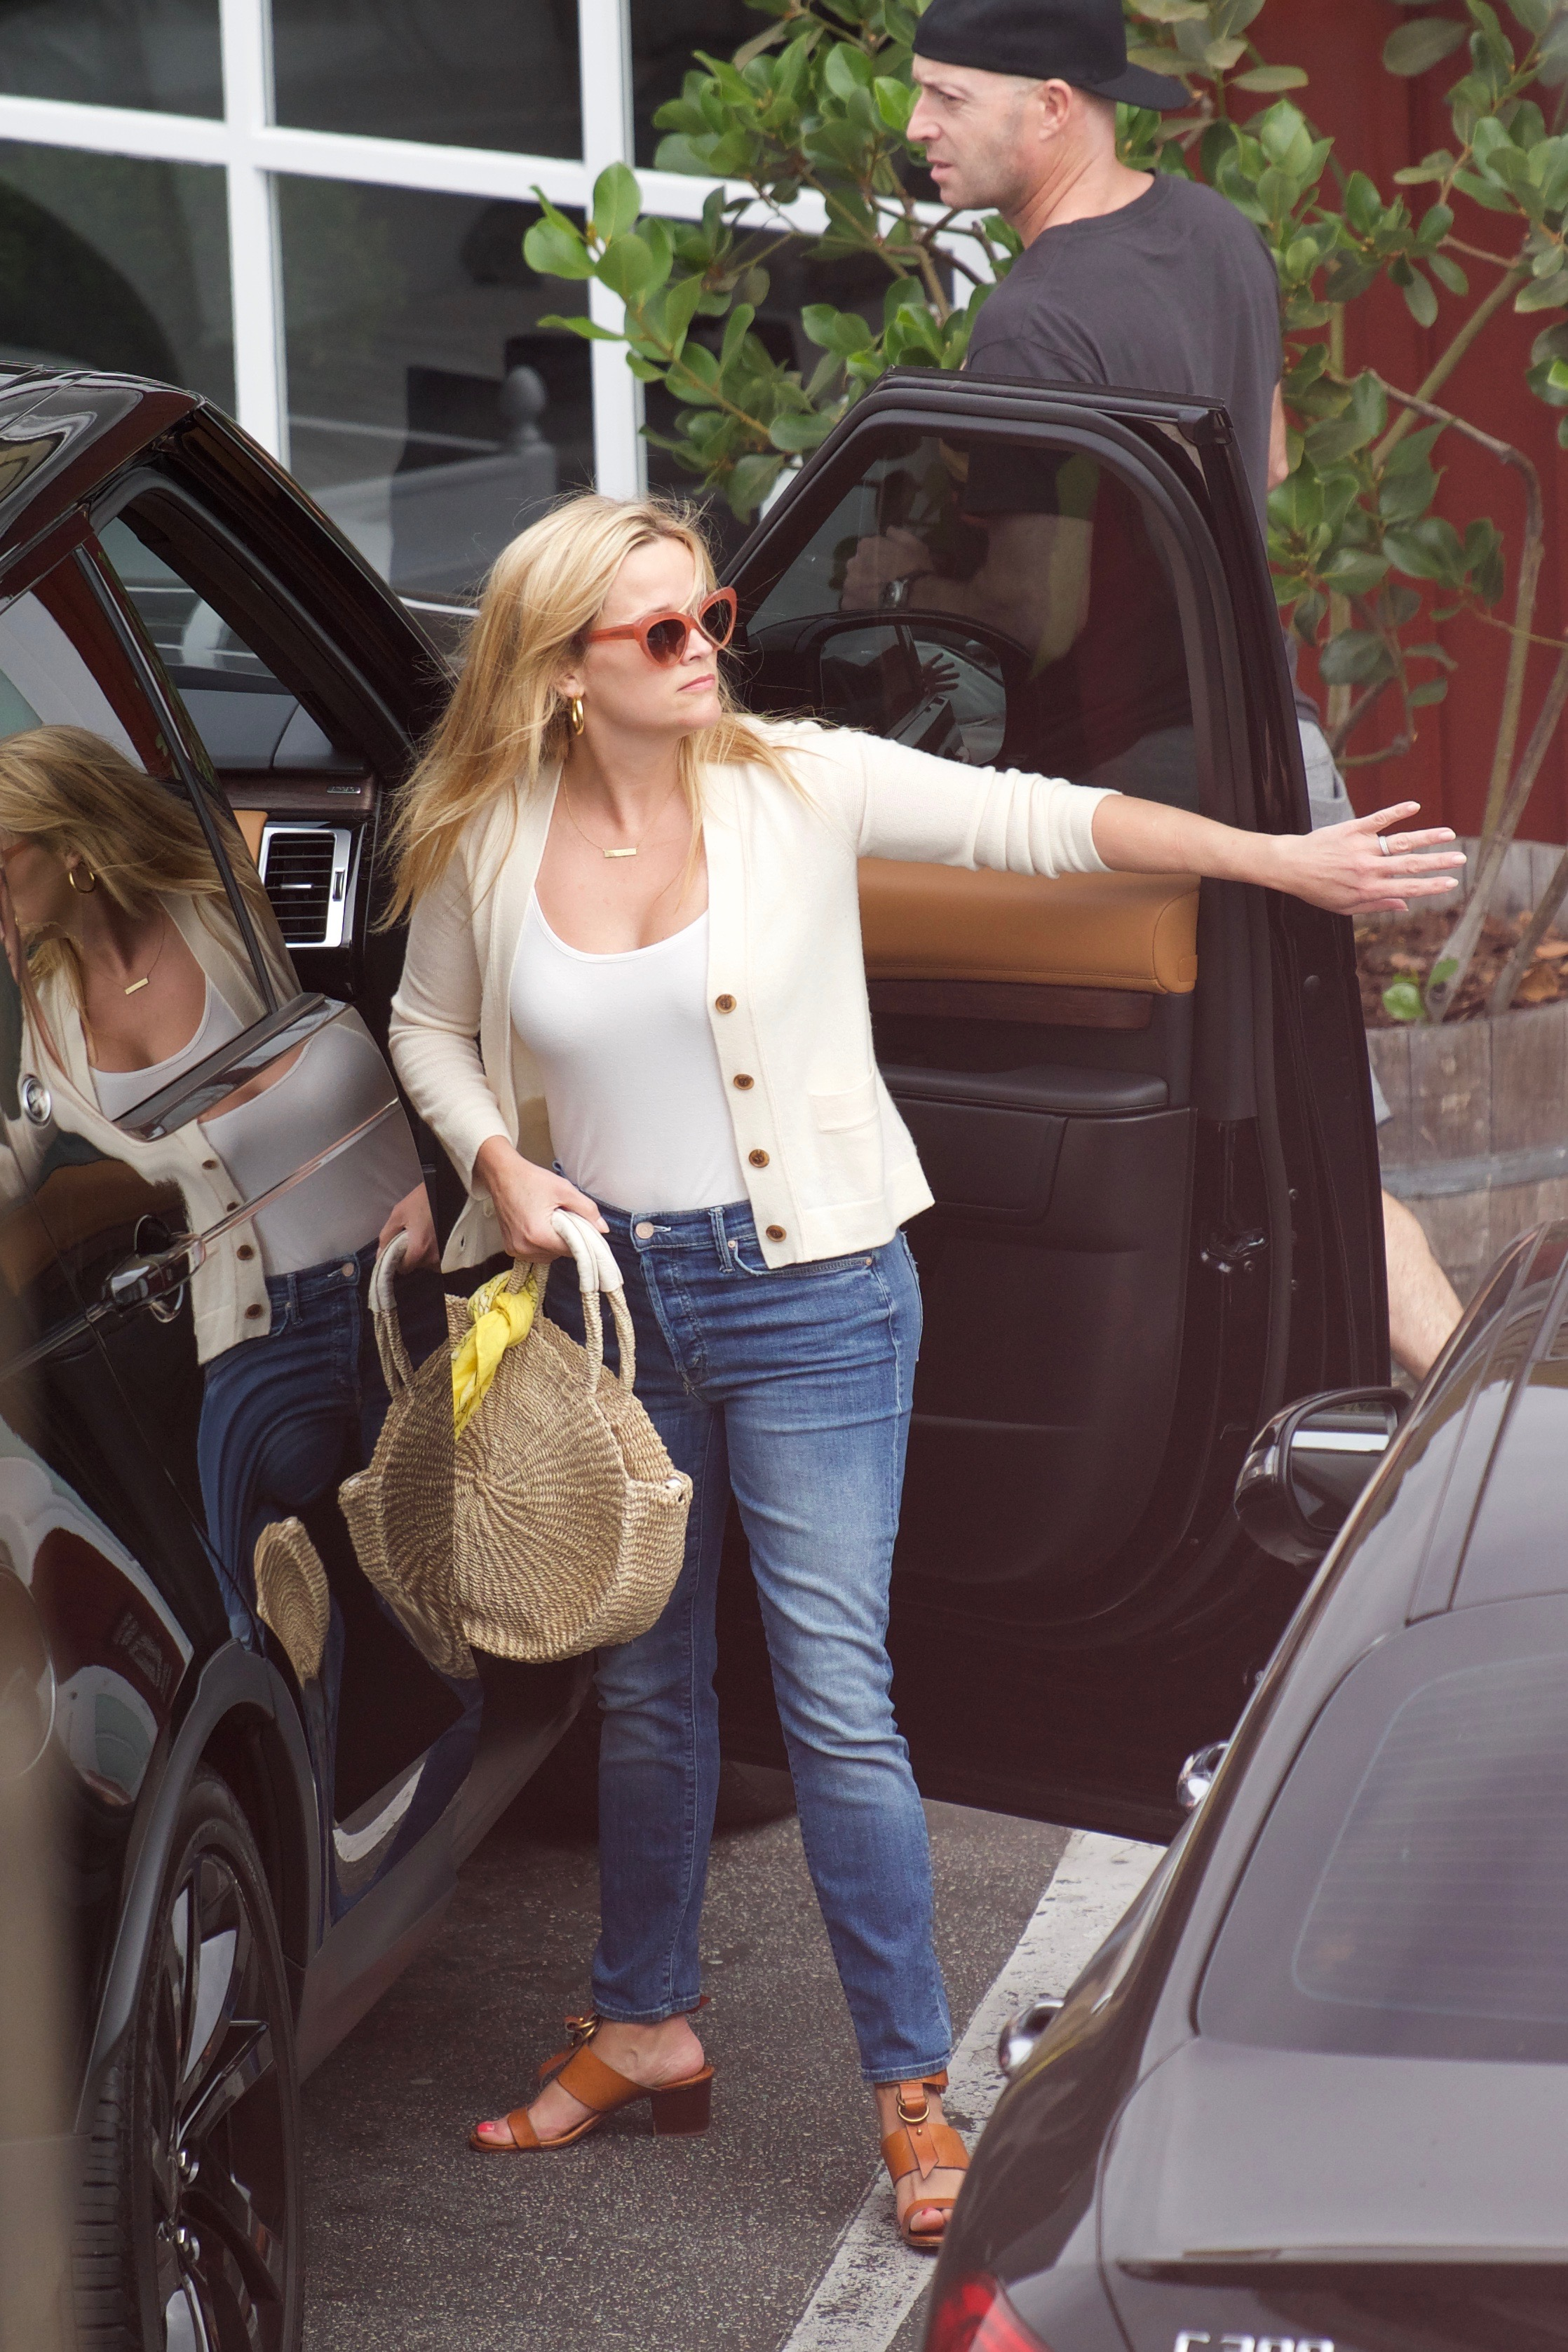 73216913_73214727_reese-witherspoon_16062018p3_47.jpg